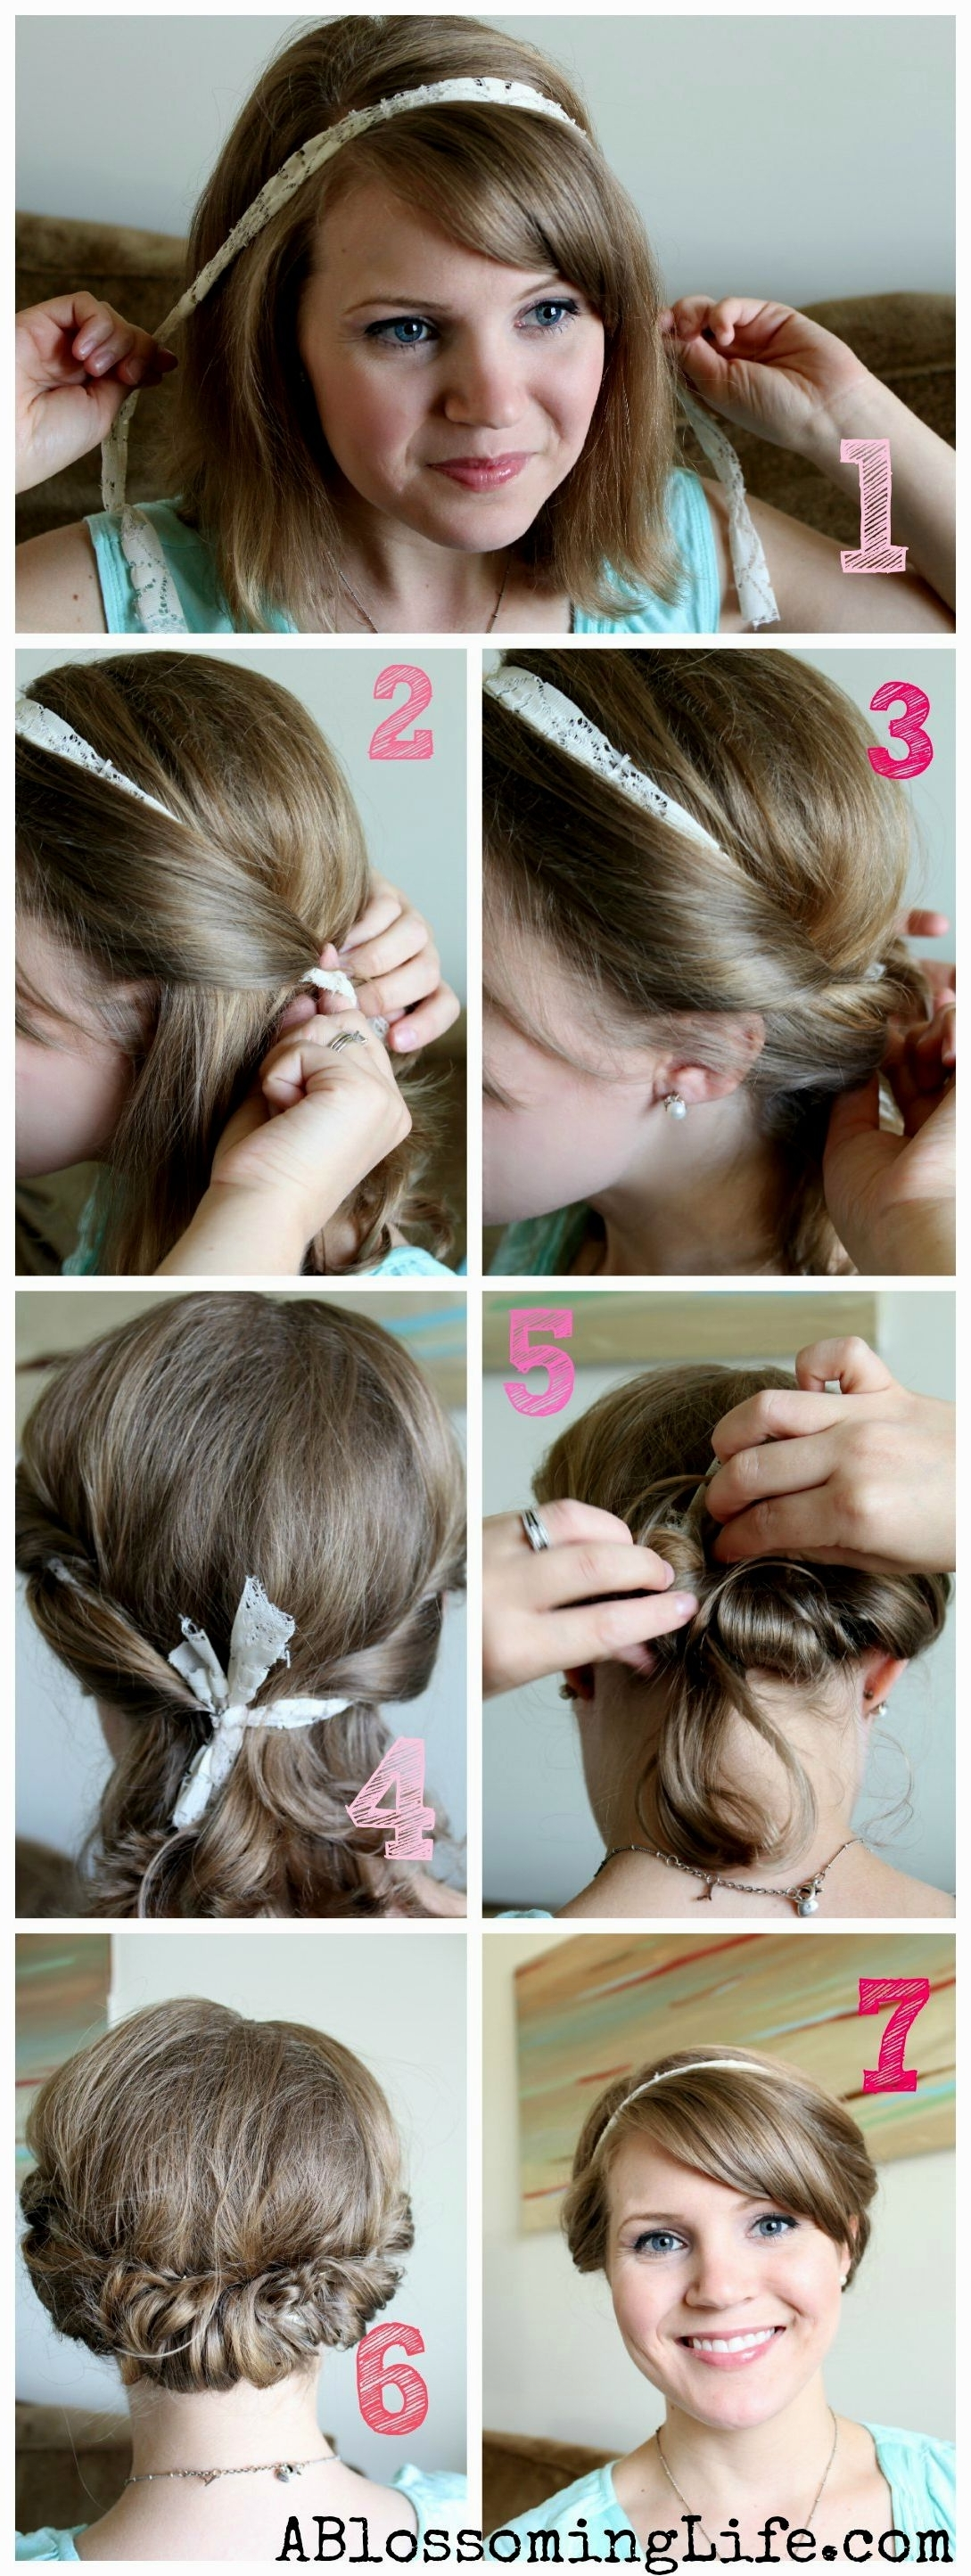 Widely Used Easy Bridal Hairstyles For Short Hair Regarding Easy Wedding Hairstyles For Short Hair (View 15 of 15)